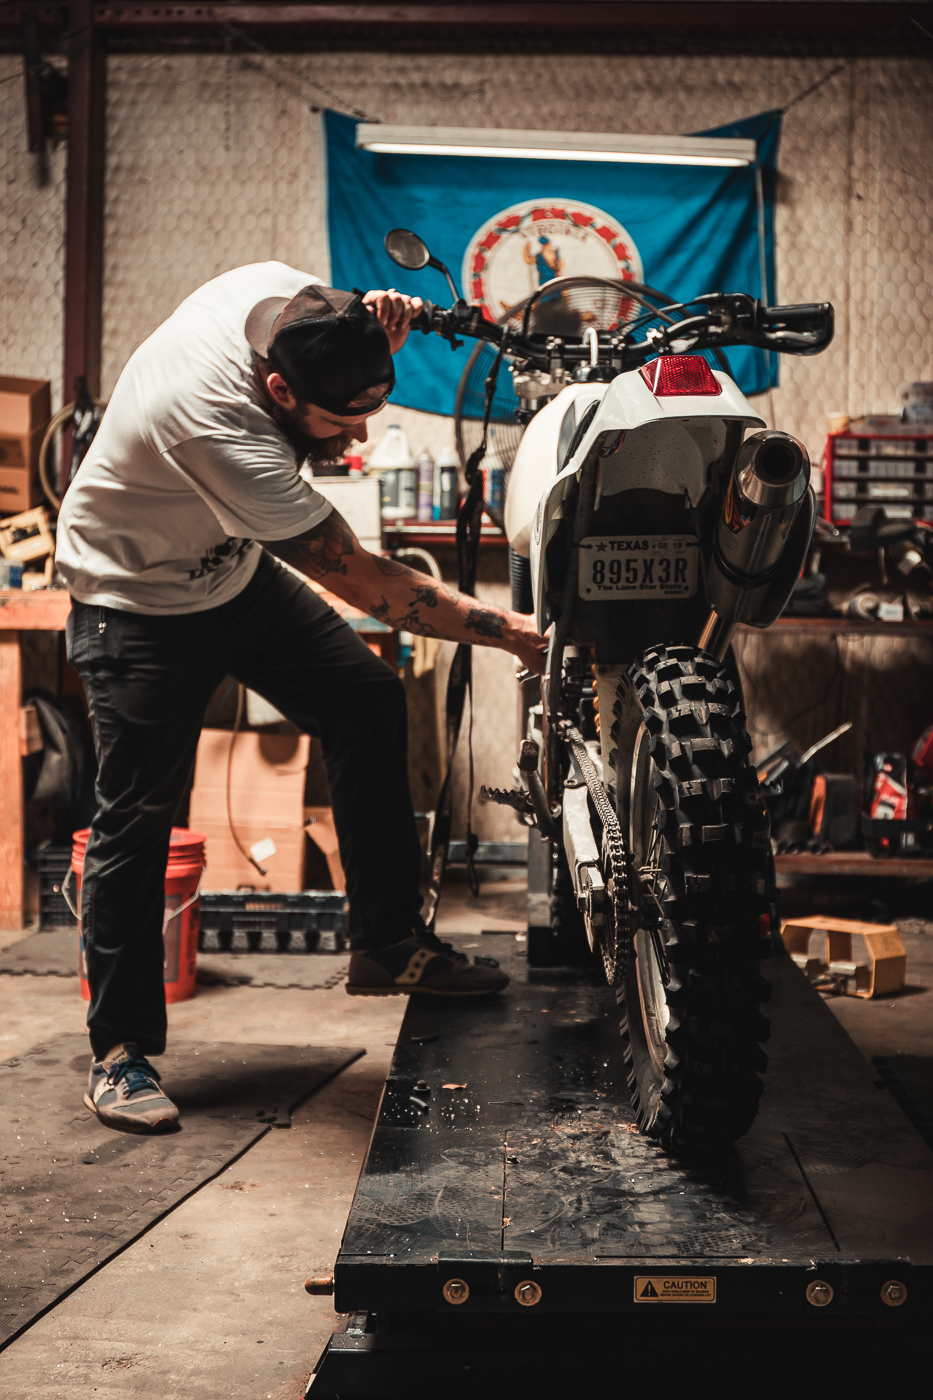 motorcycle mechanic making adjustments to a dirt bike in his automotive shop